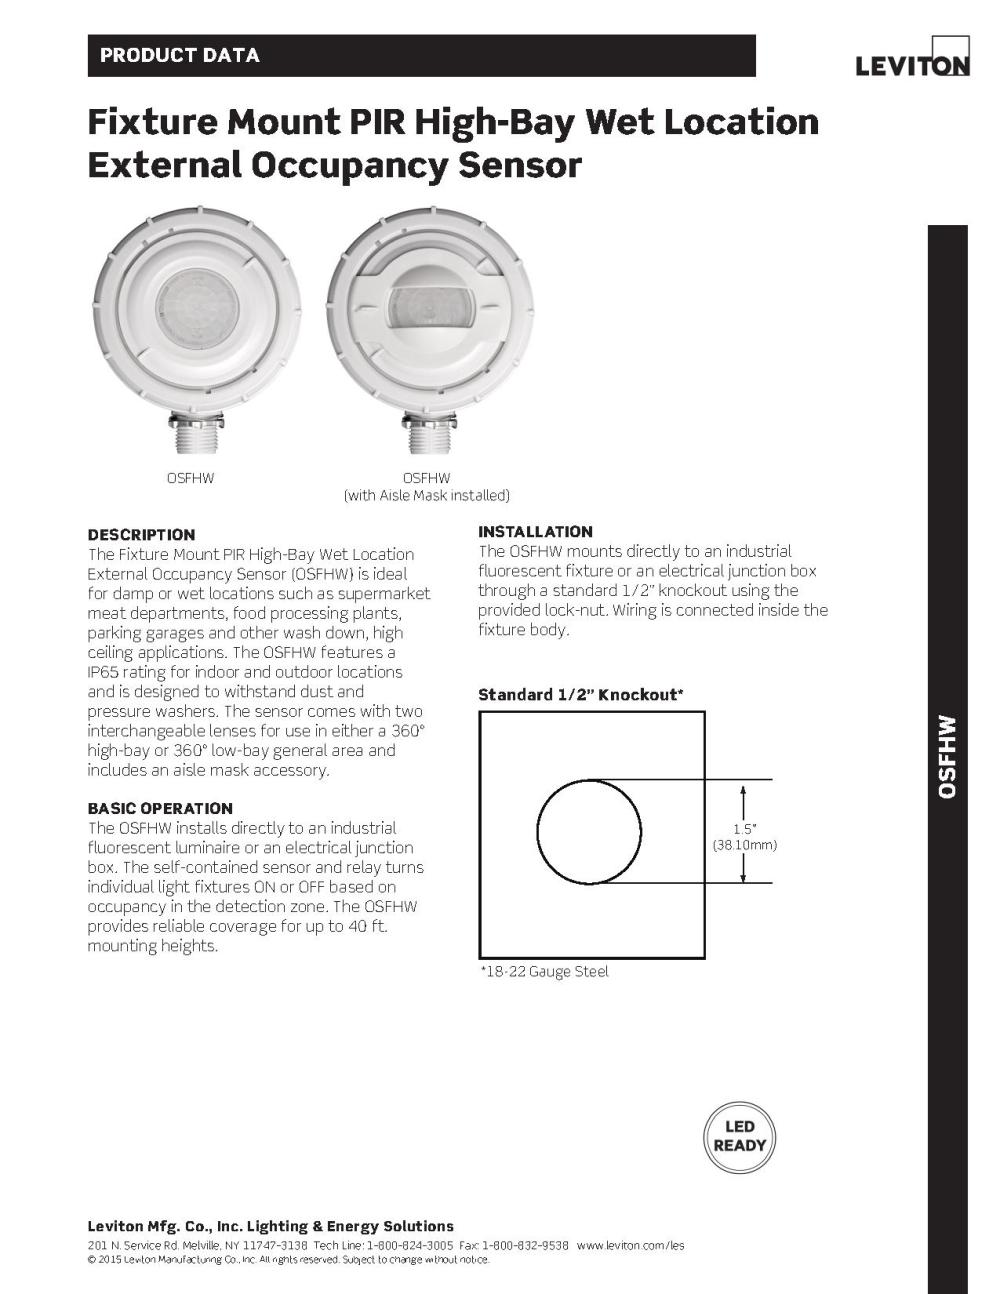 medium resolution of leviton osfhw wet location external high bay occupancy sensor